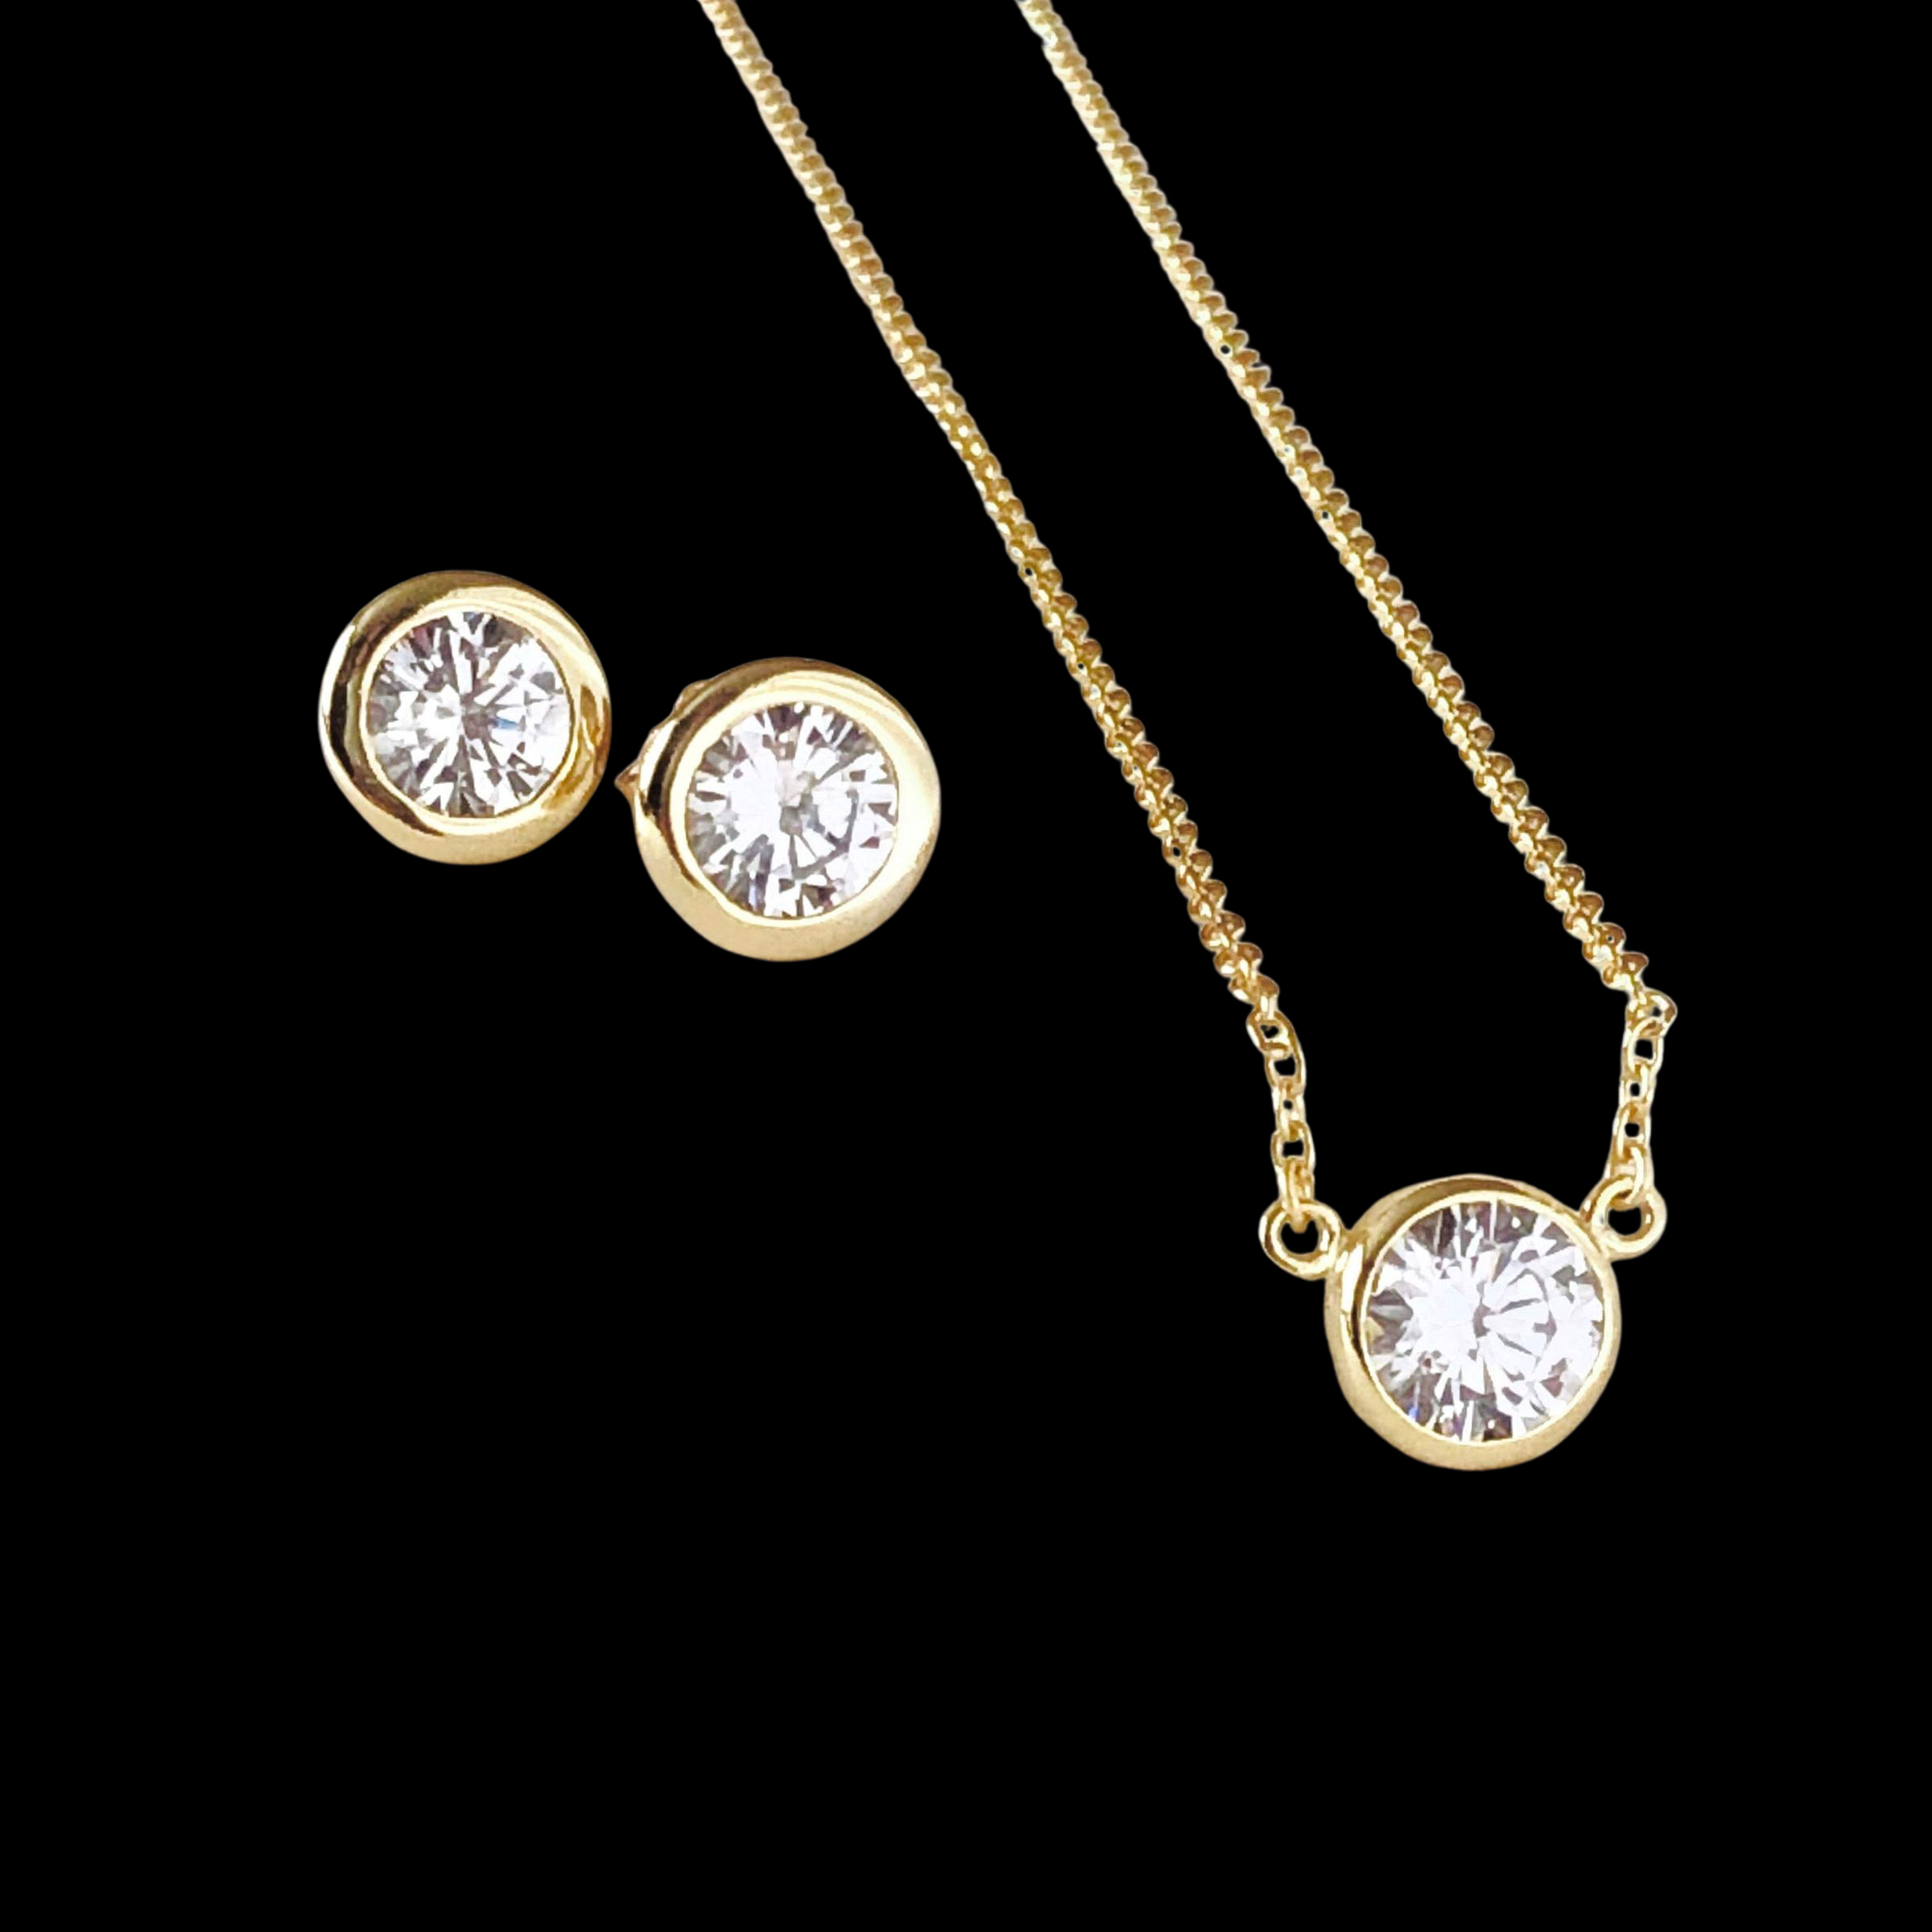 Image of Diamond Necklace and Earring Gift Set